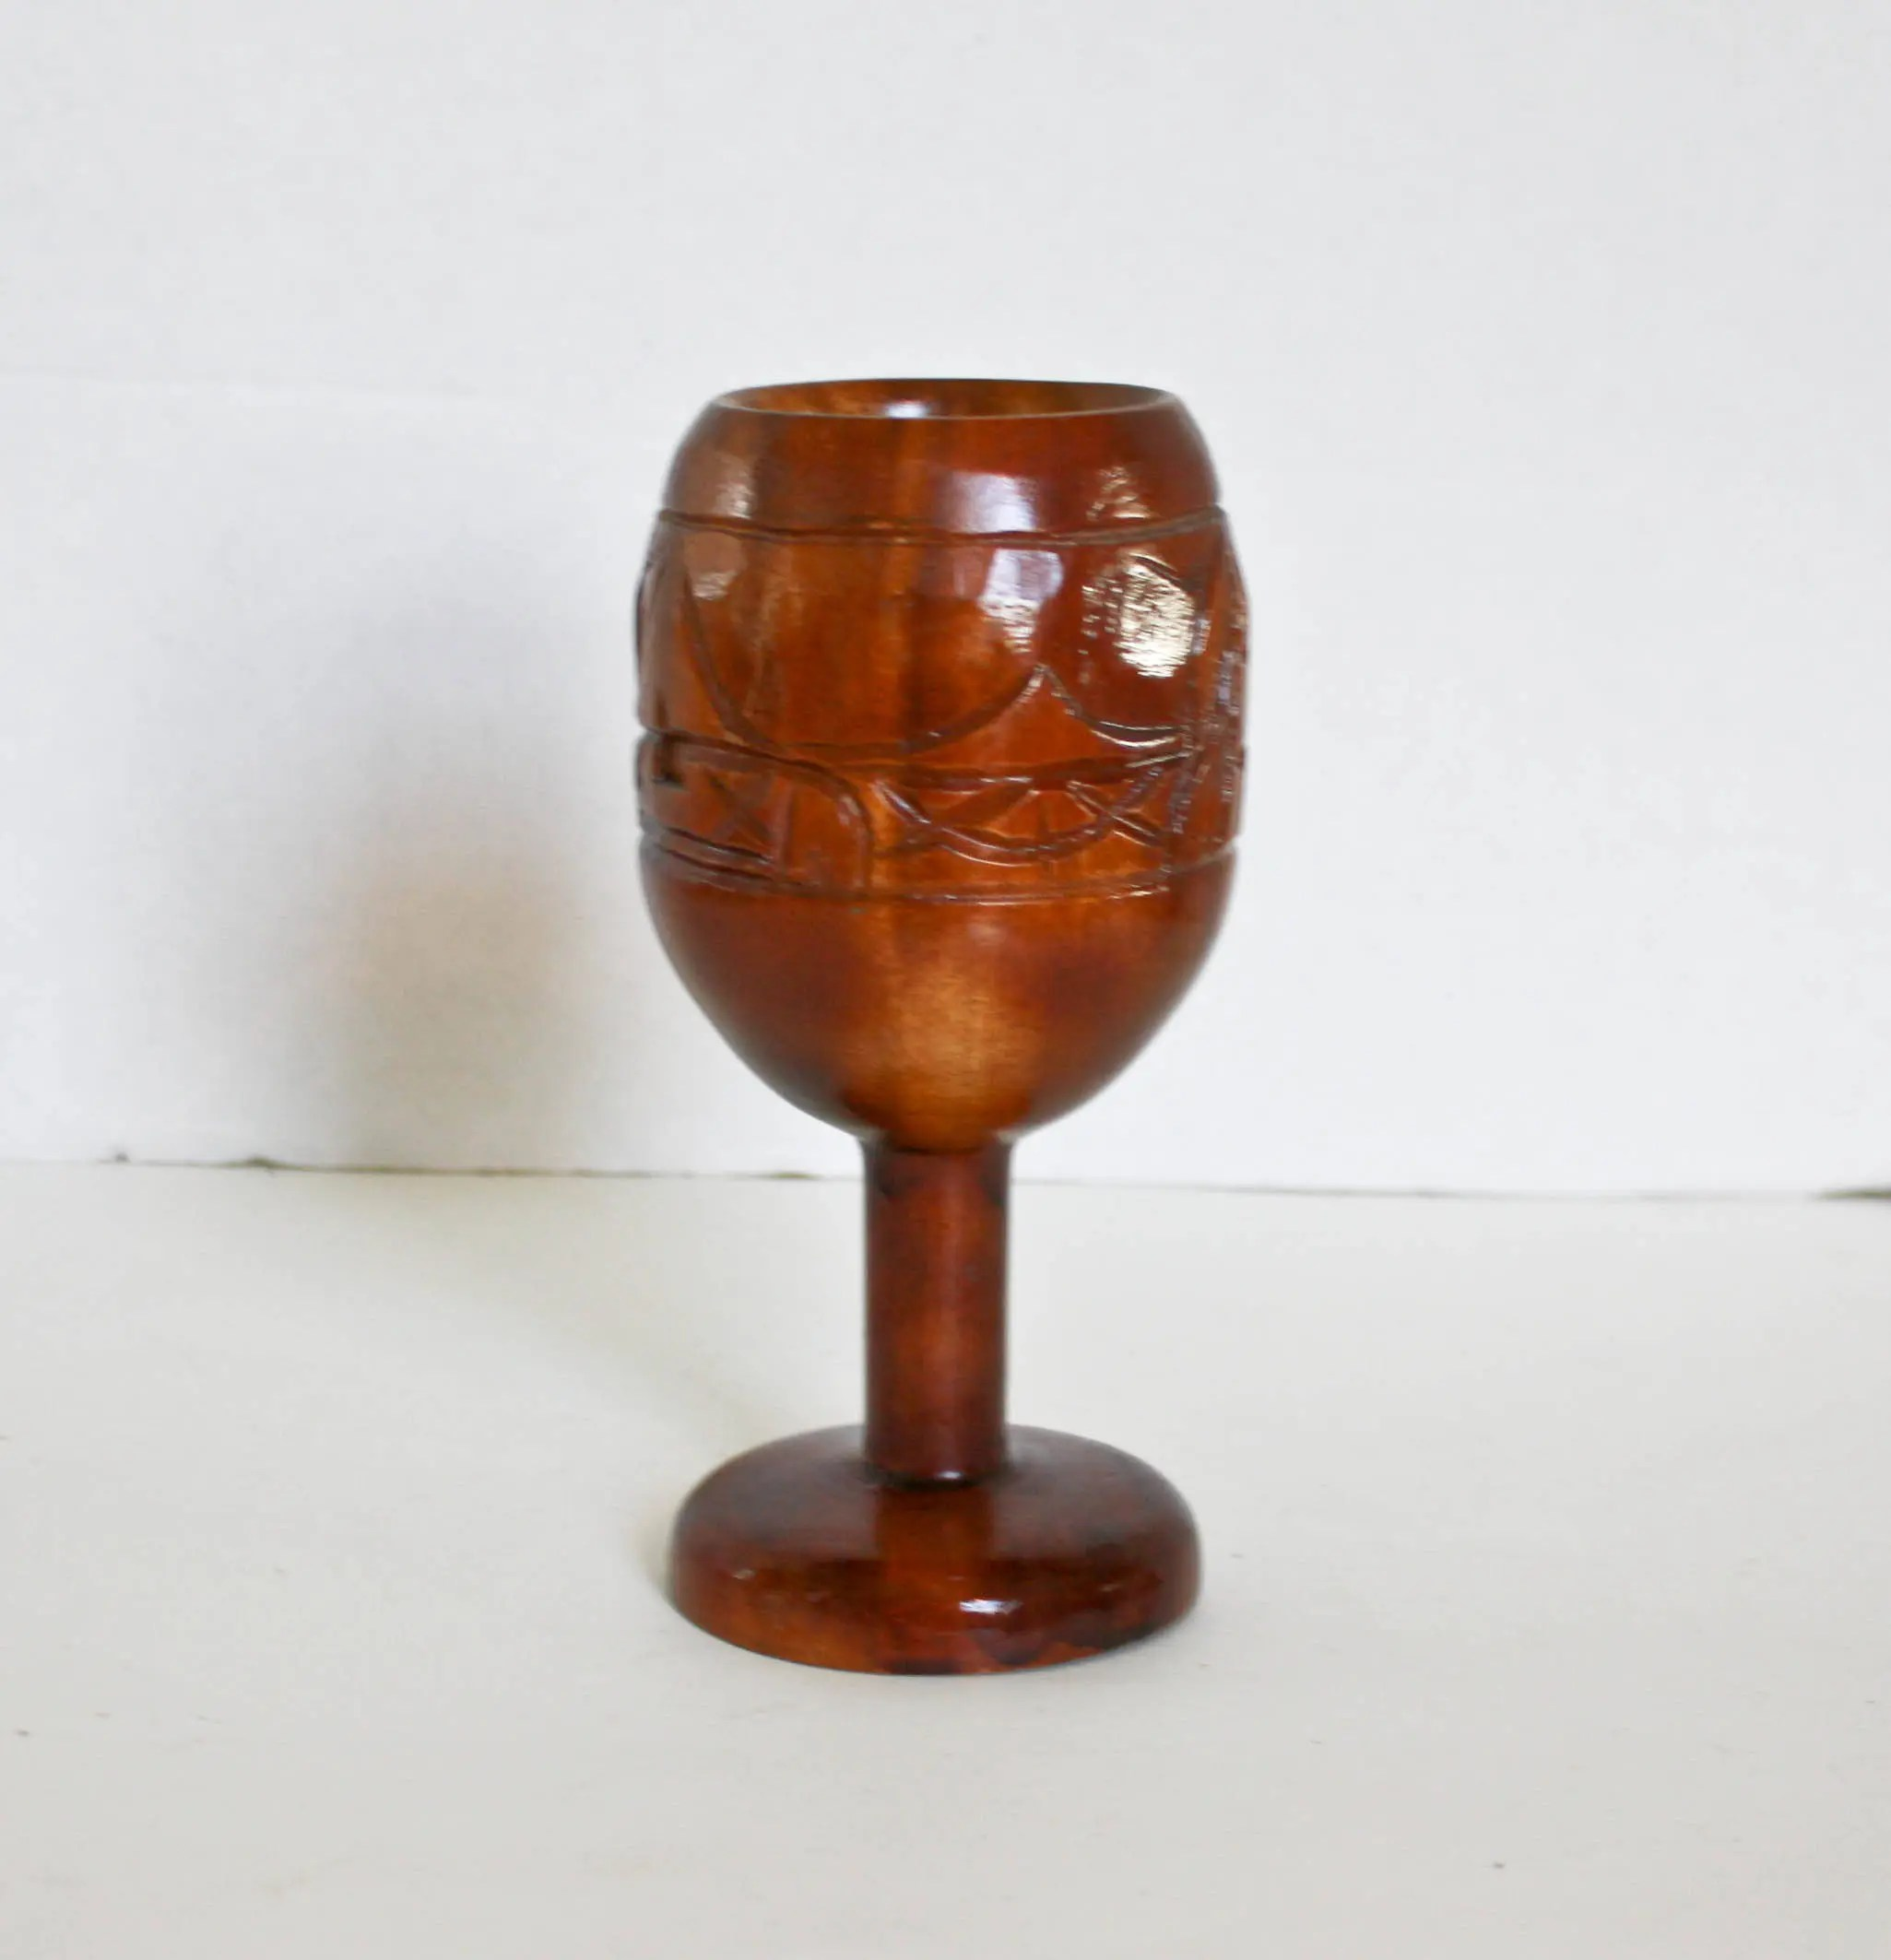 Wooden Goblet With Rings